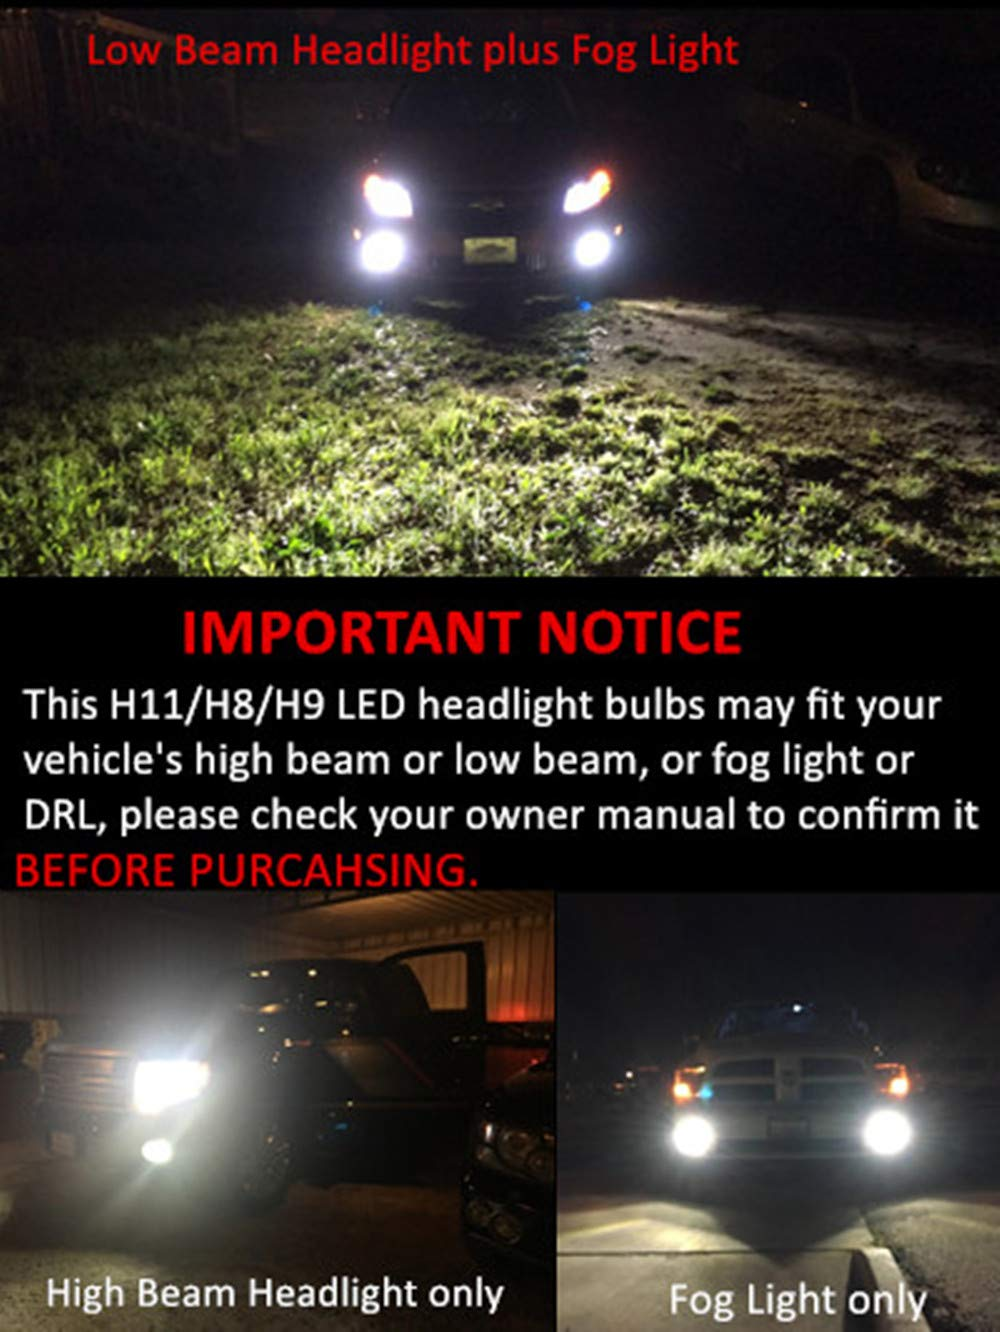 Alla Lighting 10000lm Led H11 Headlight Bulbs Or Fog Lights Not Both Extremely Super Bright Ts Cr H8 H9 H11 Led Headlight Bulbs Or Fog Light